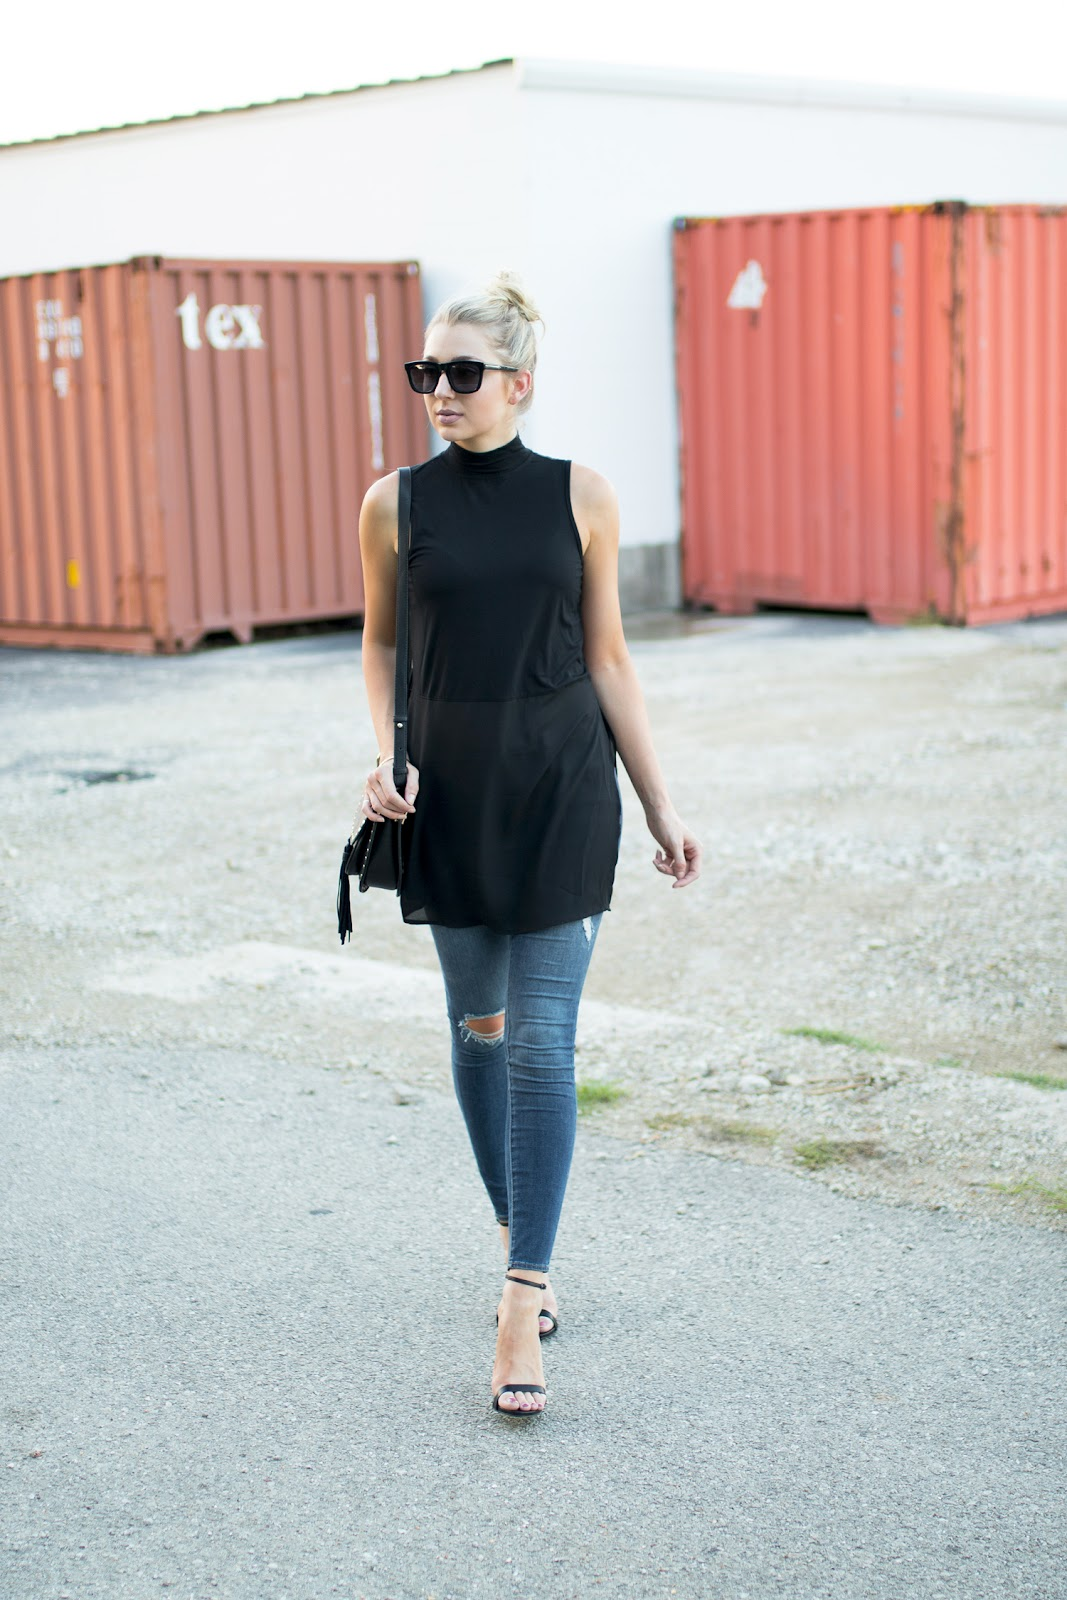 Black tunic tank top with jeans